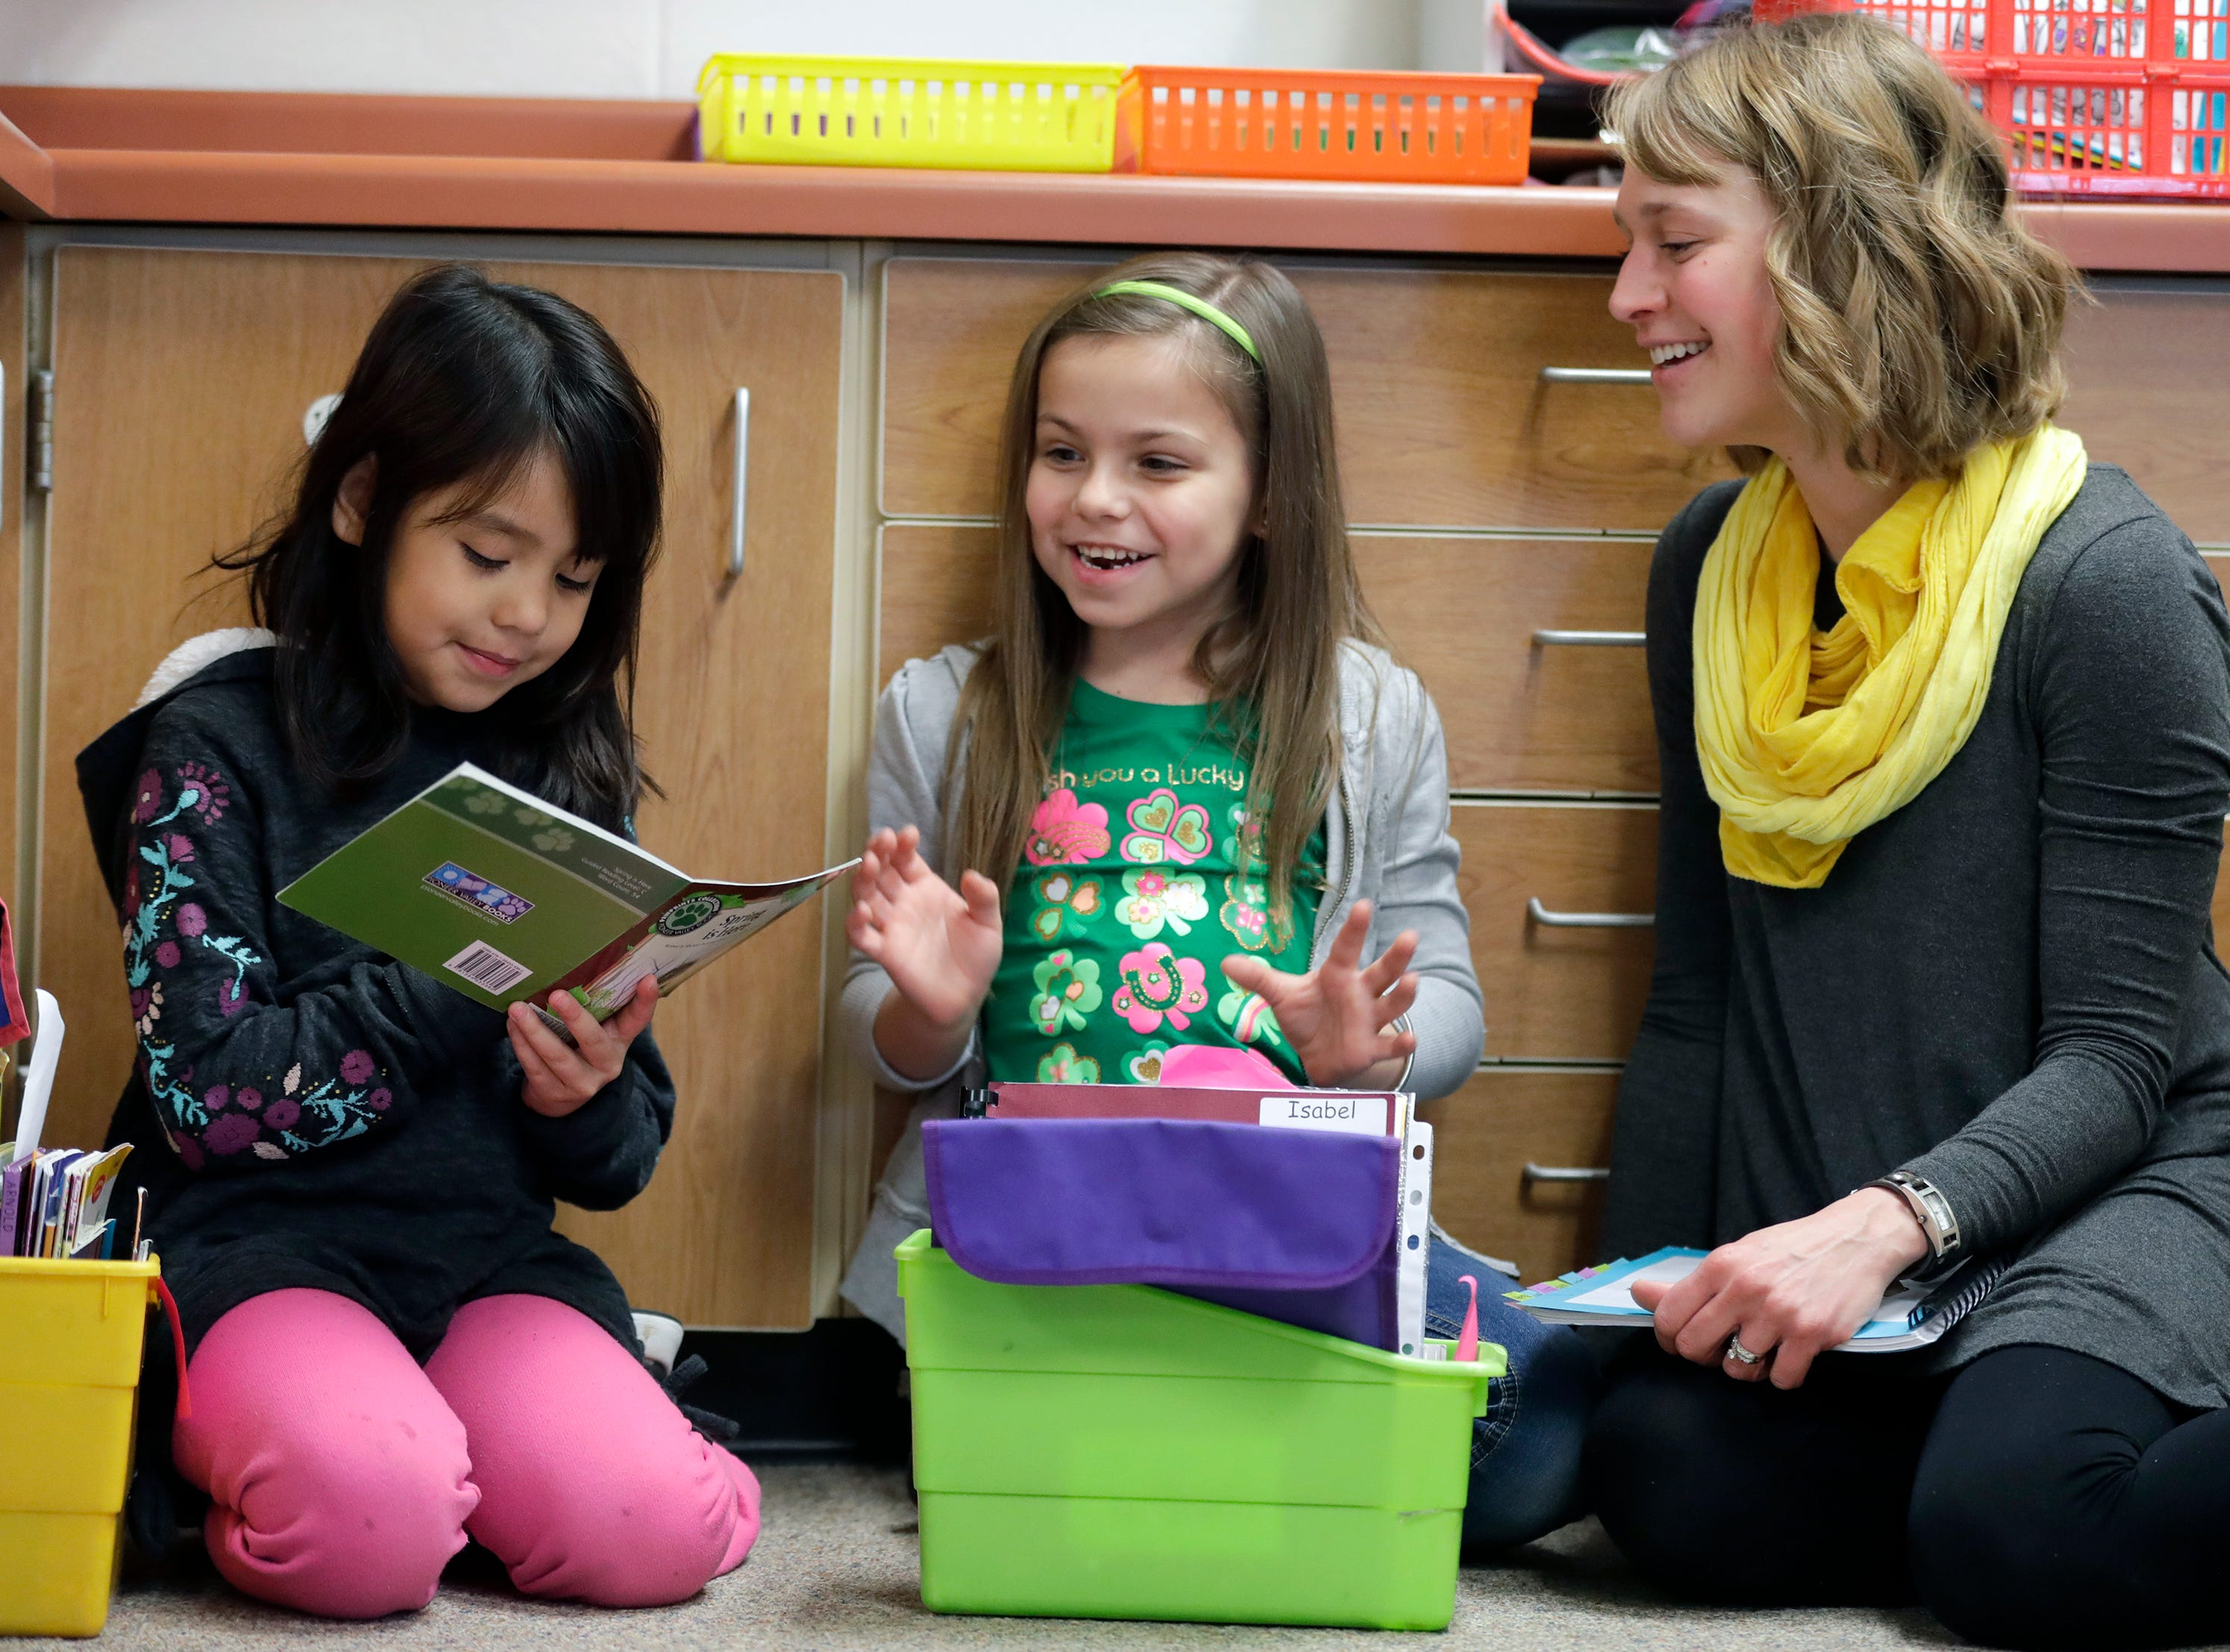 First grade students Stephanie Lopez Rivera, left, and Isabel Erdman participate in partner reading with the guidance of their teacher Emily Thomas Monday, March 4, 2019, at Horizons Elementary School in Appleton, Wis. Dan Powers/USA TODAY NETWORK-Wisconsin